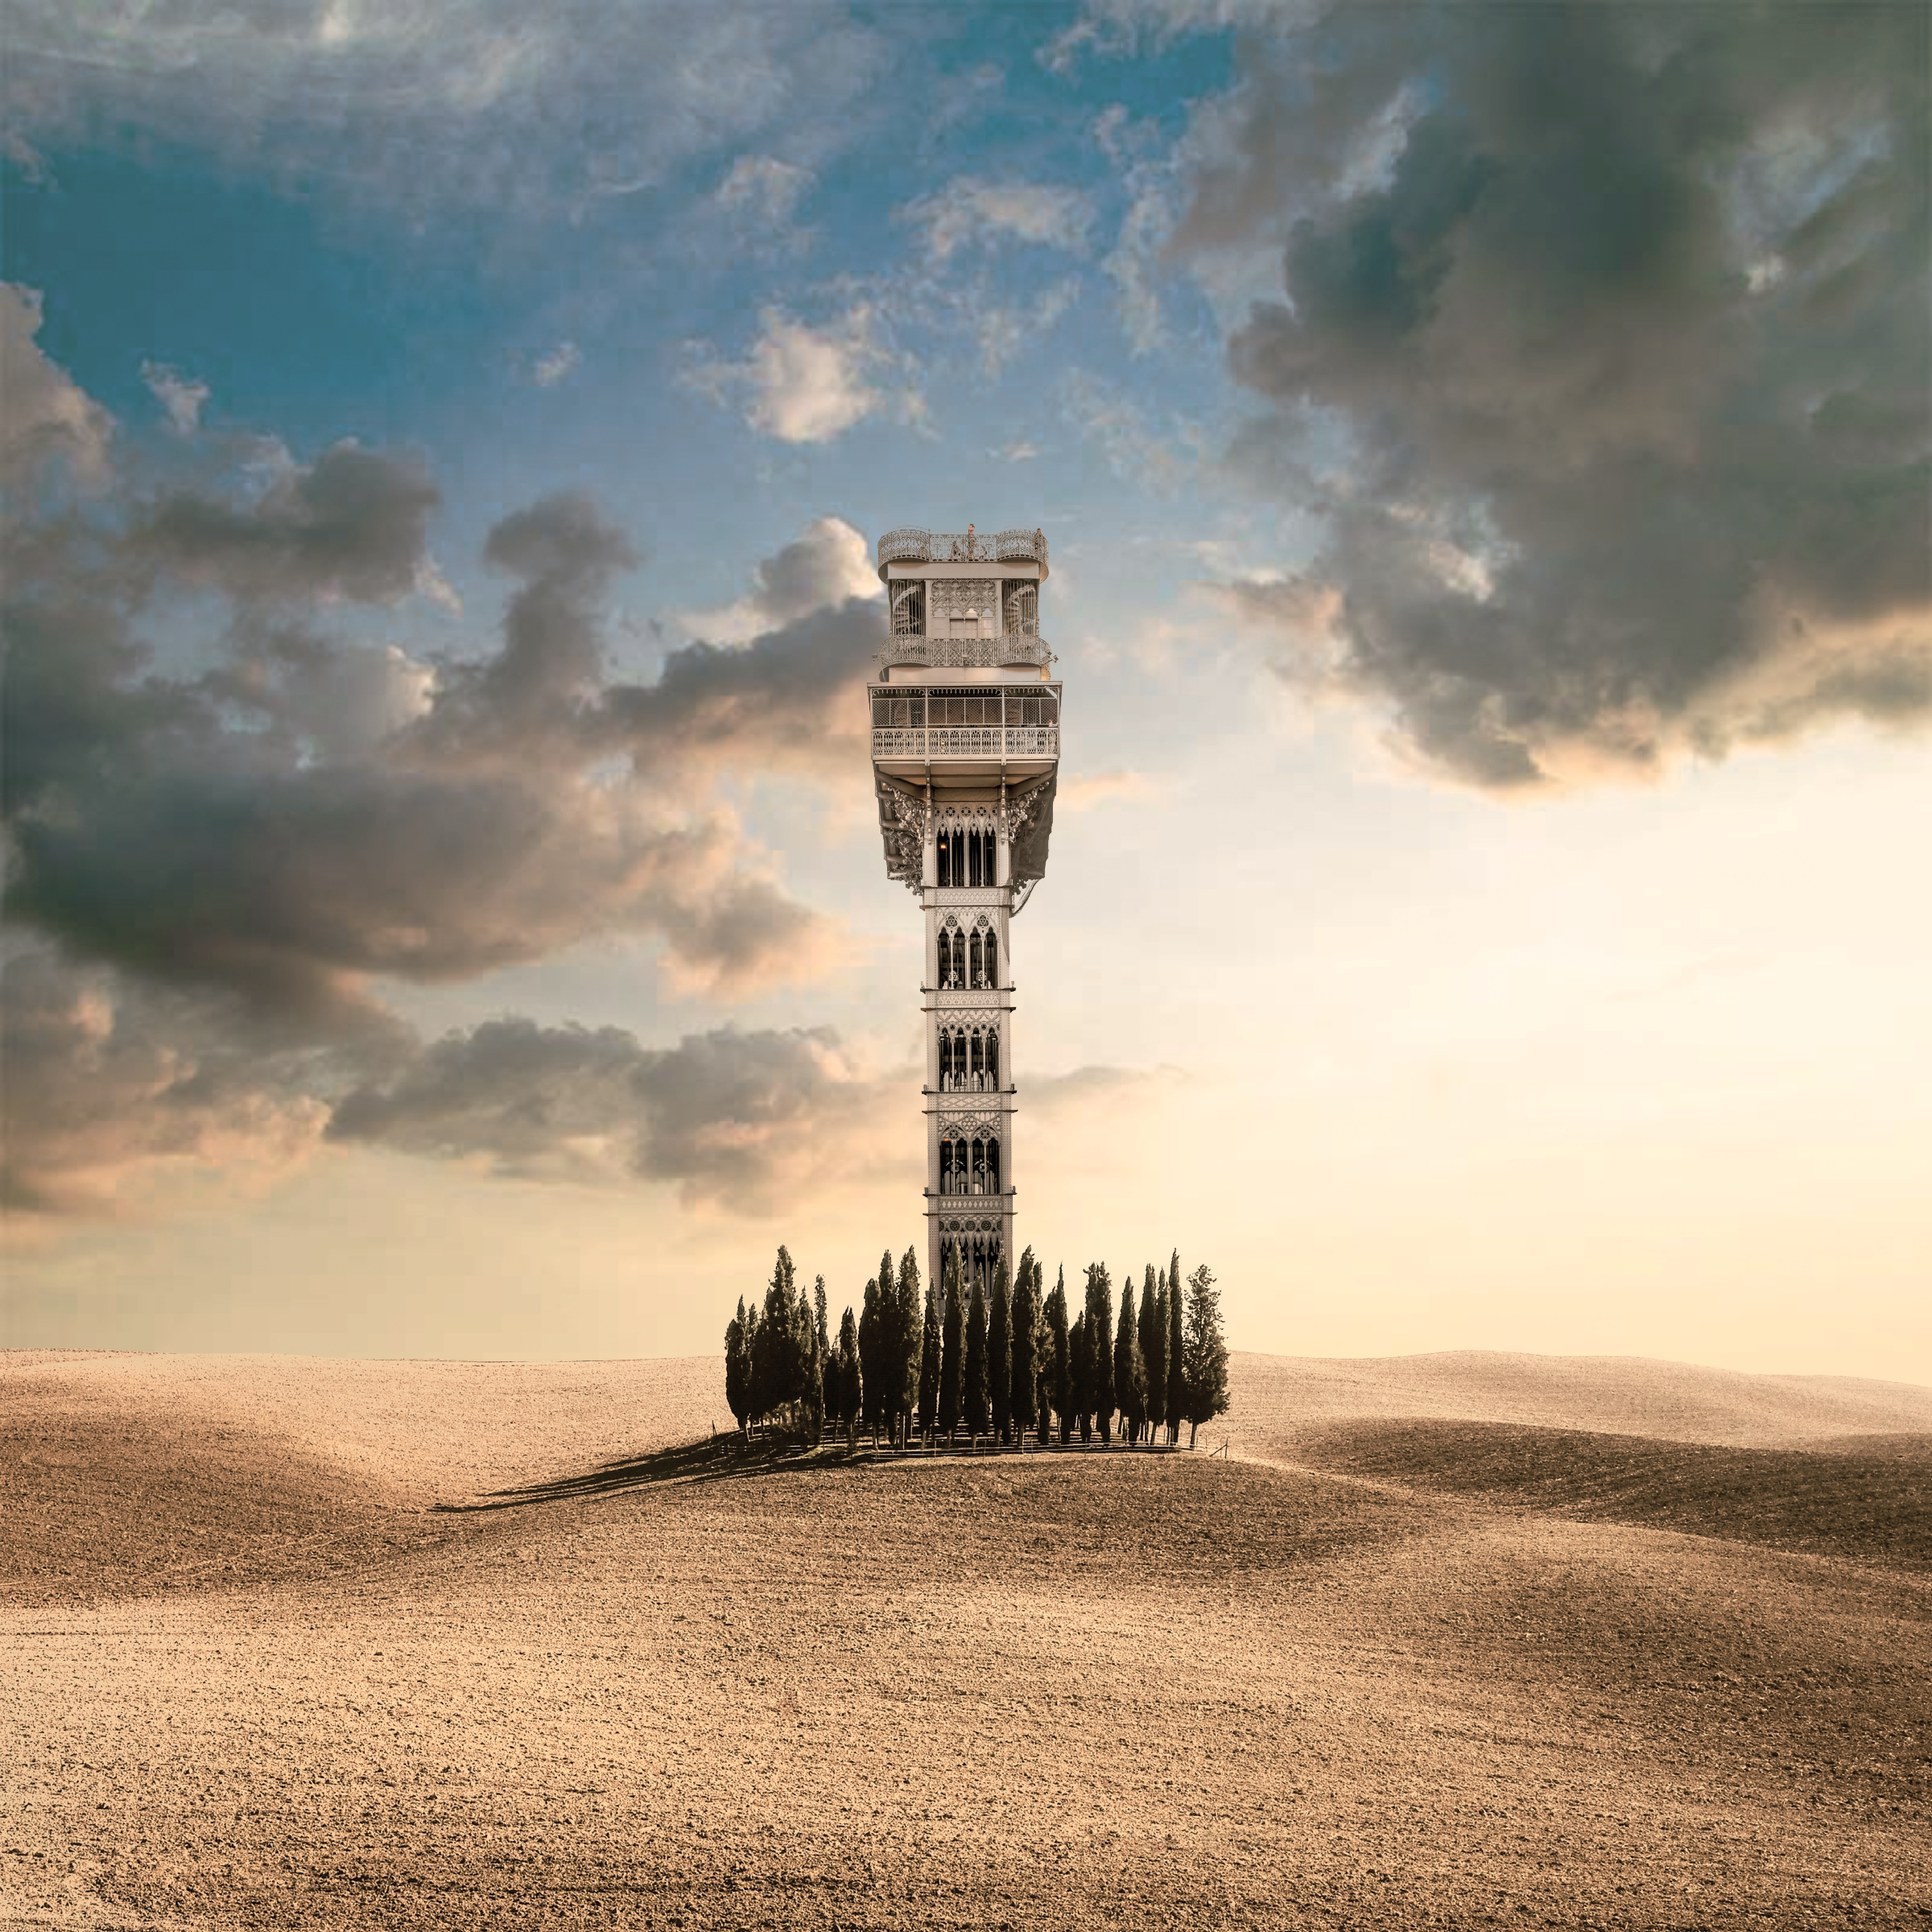 They Built An Elevator To The Sky